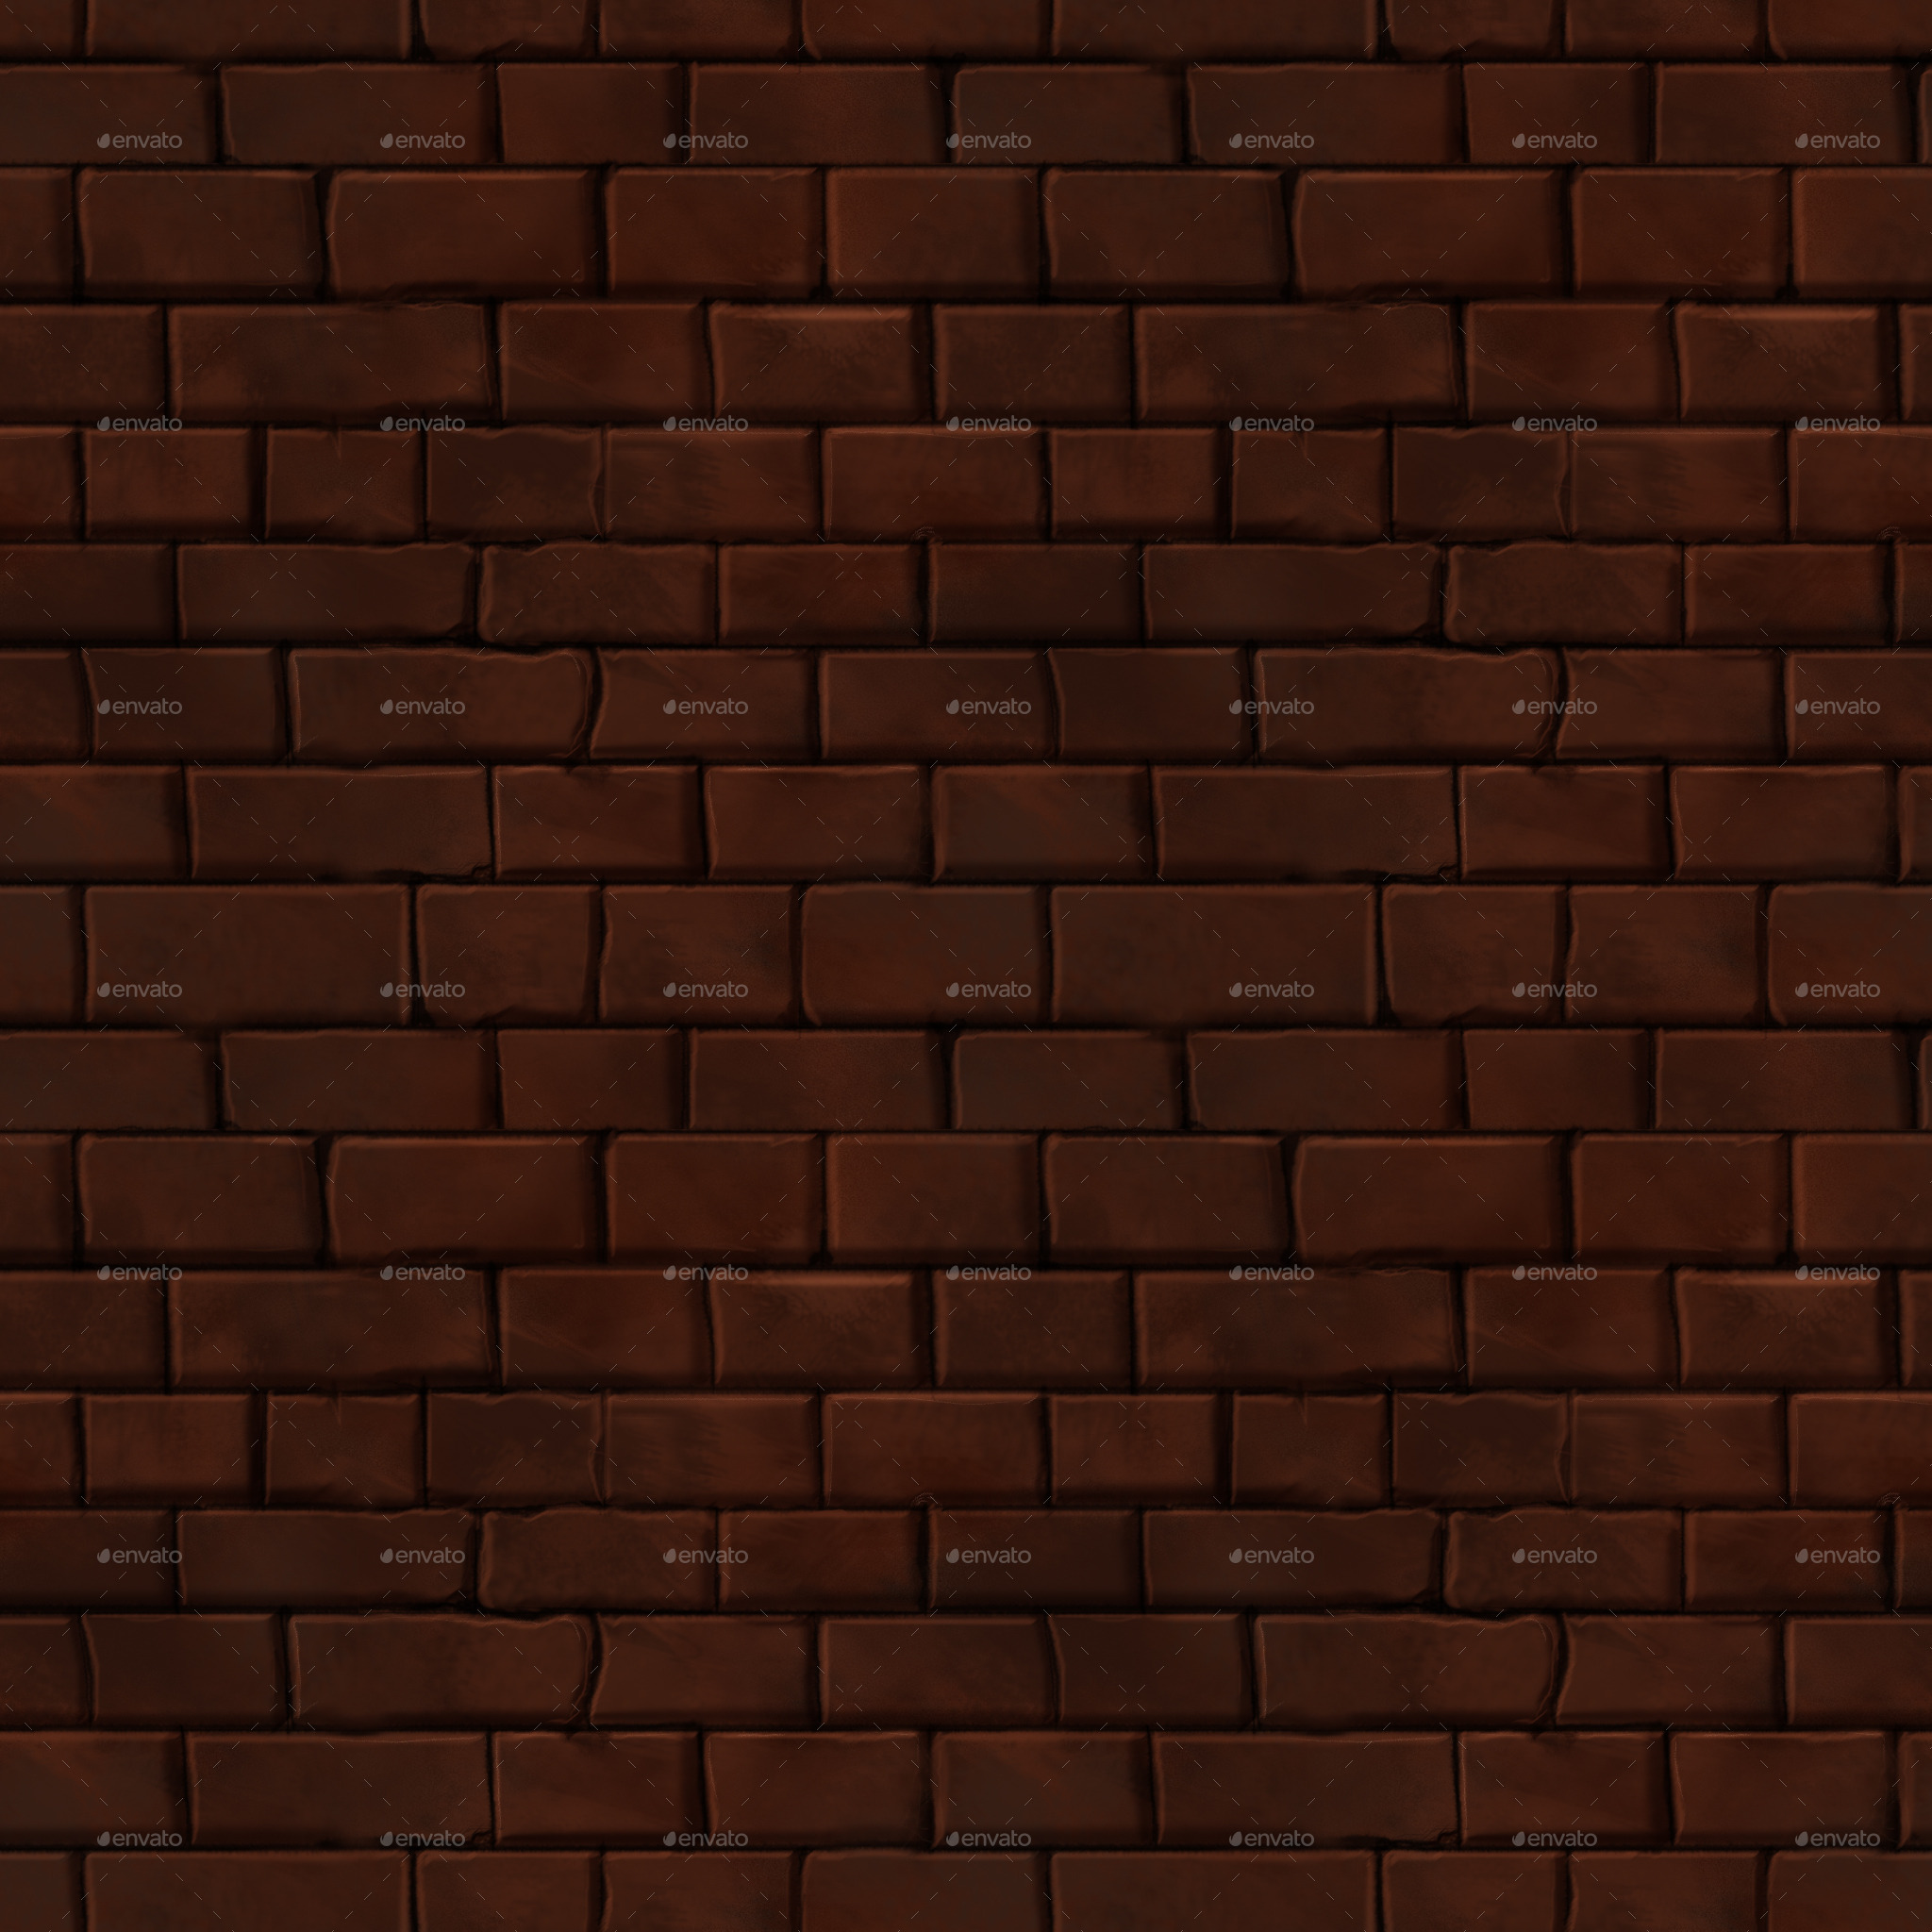 Design Painted Brick Texture brick wall texture pack b1 by hrosev 3docean b1